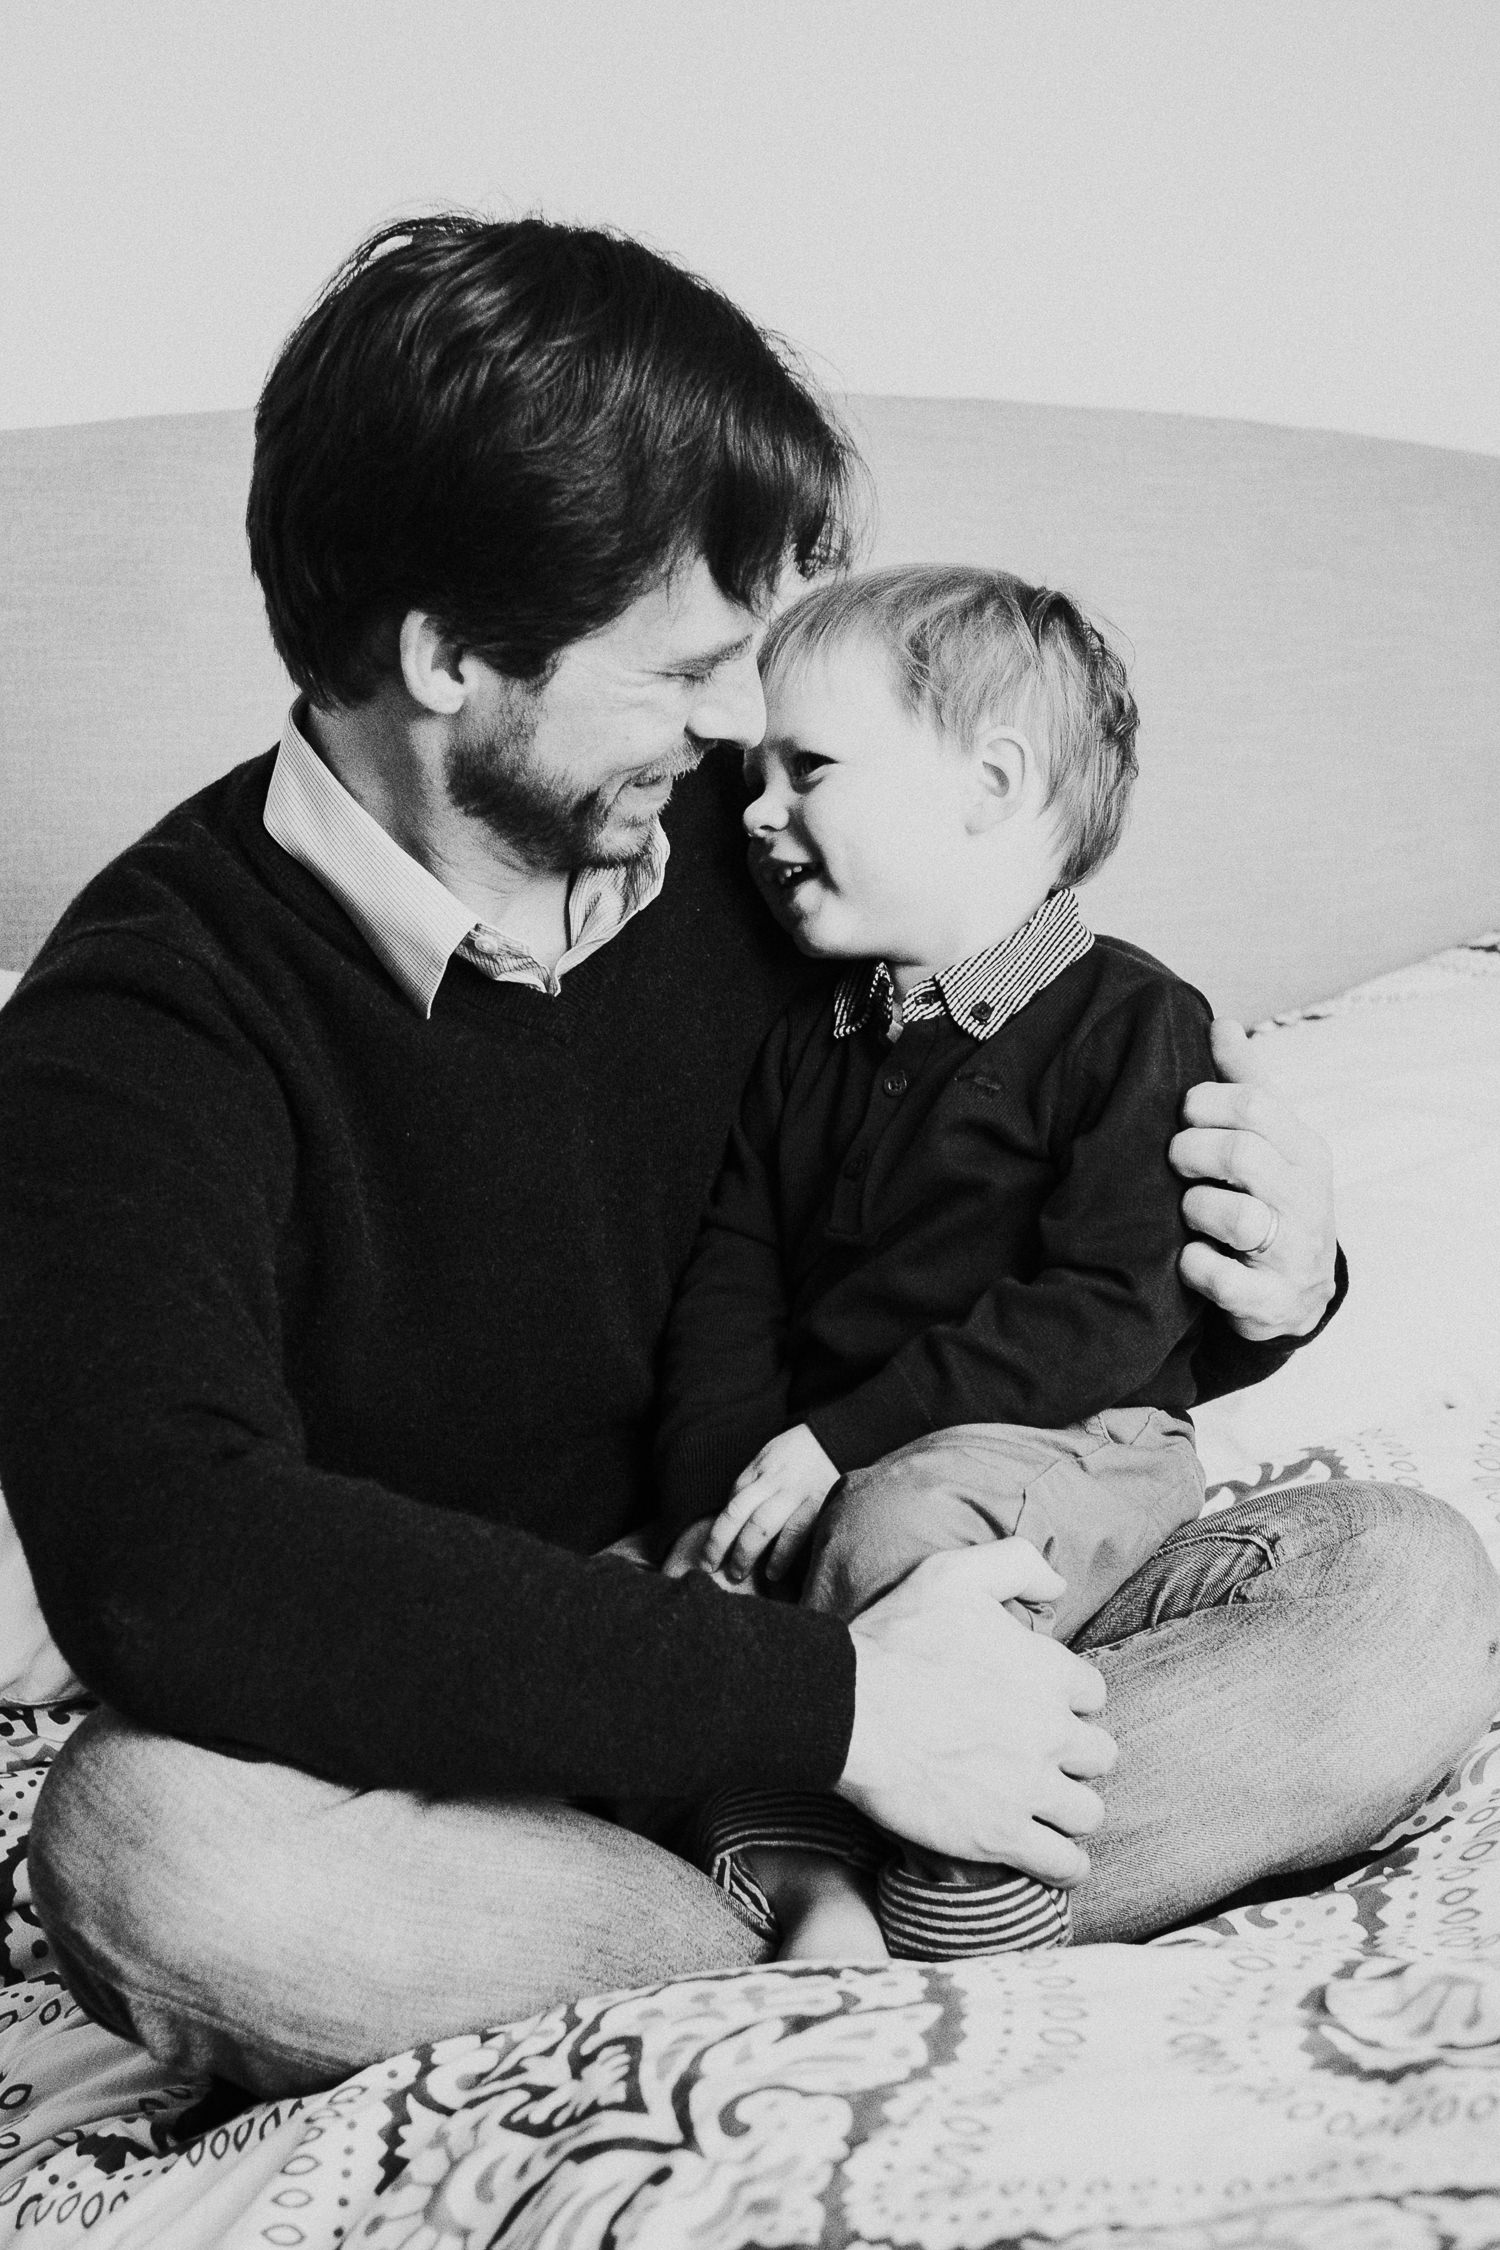 notting hill family photographer black and white portrait of father and son sitting on bed laughing